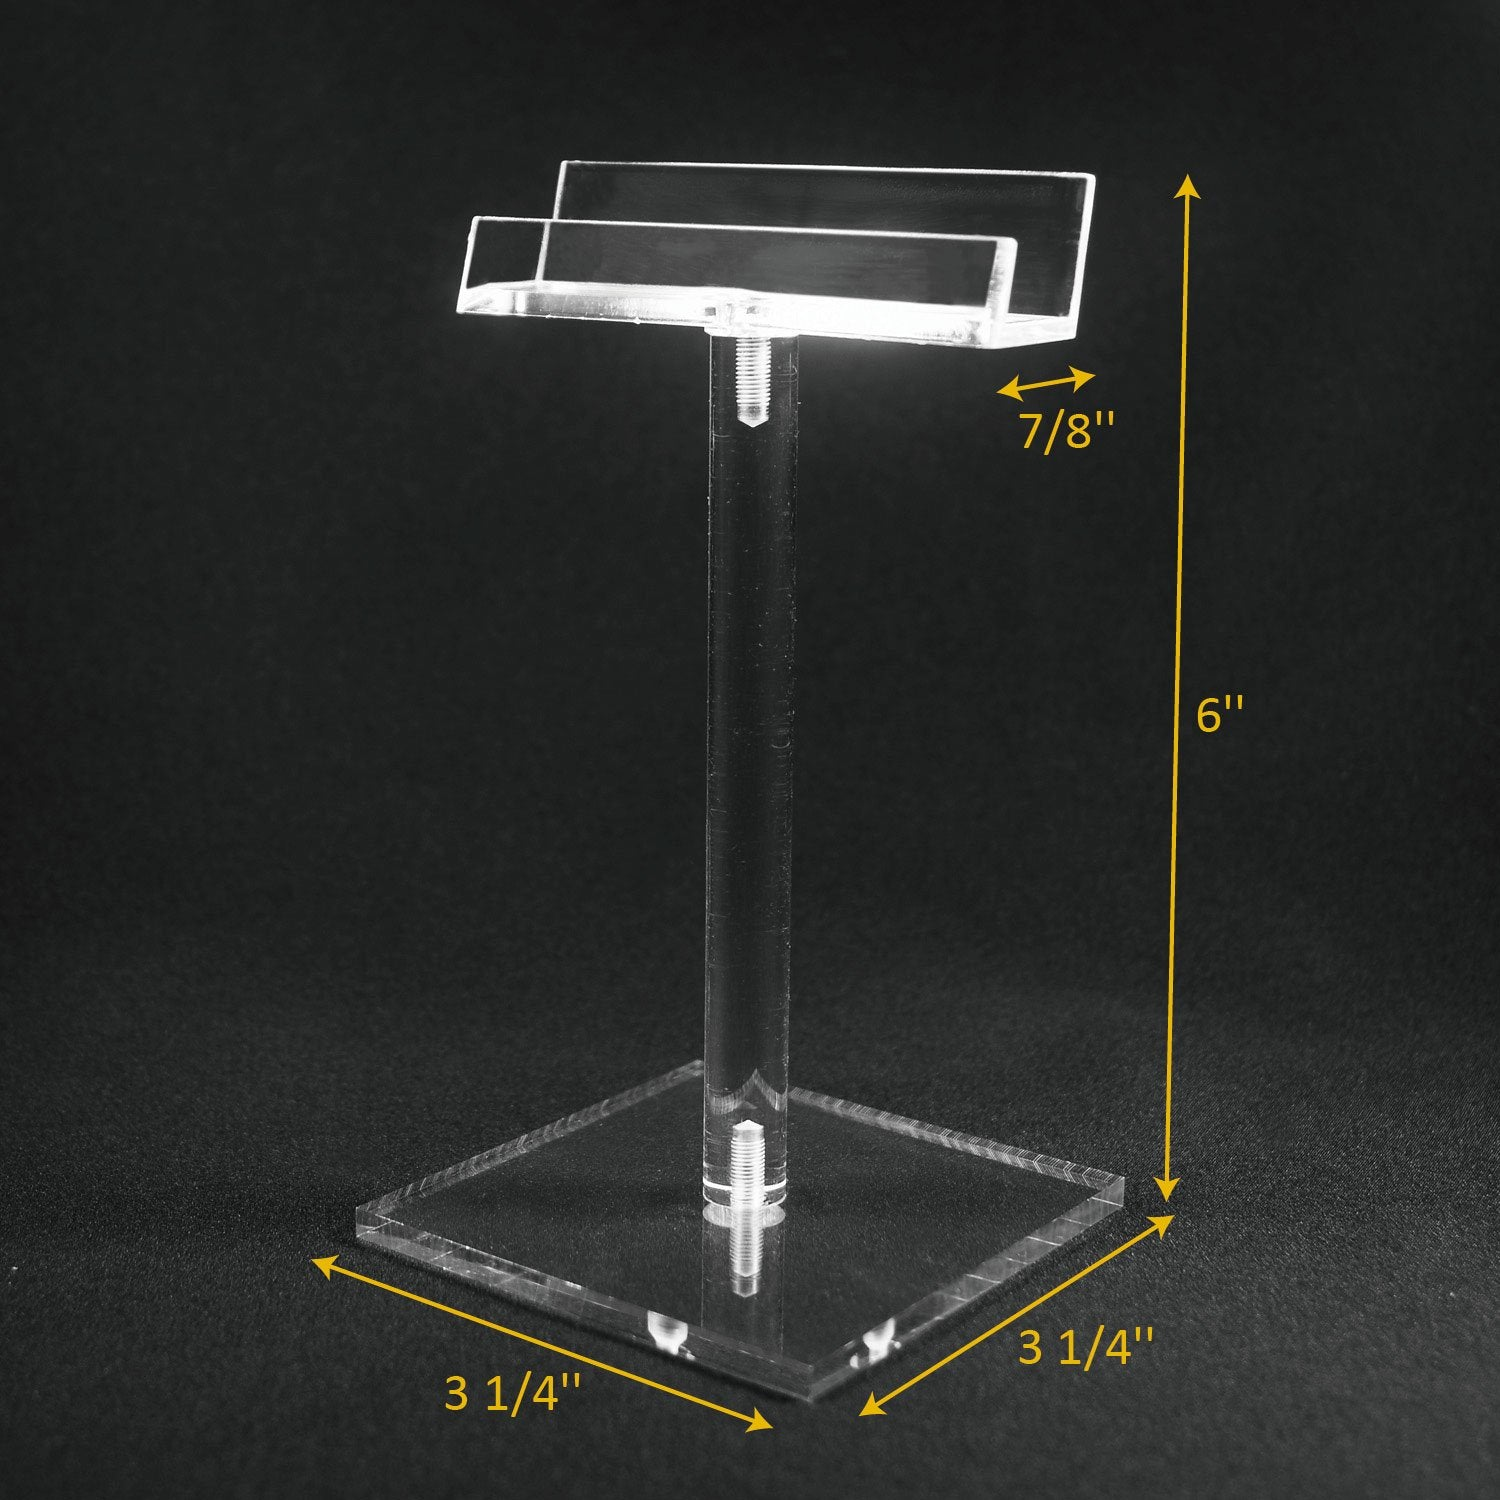 #AC-006 Acrylic Single Eyeglass Frame Stand | APEX International